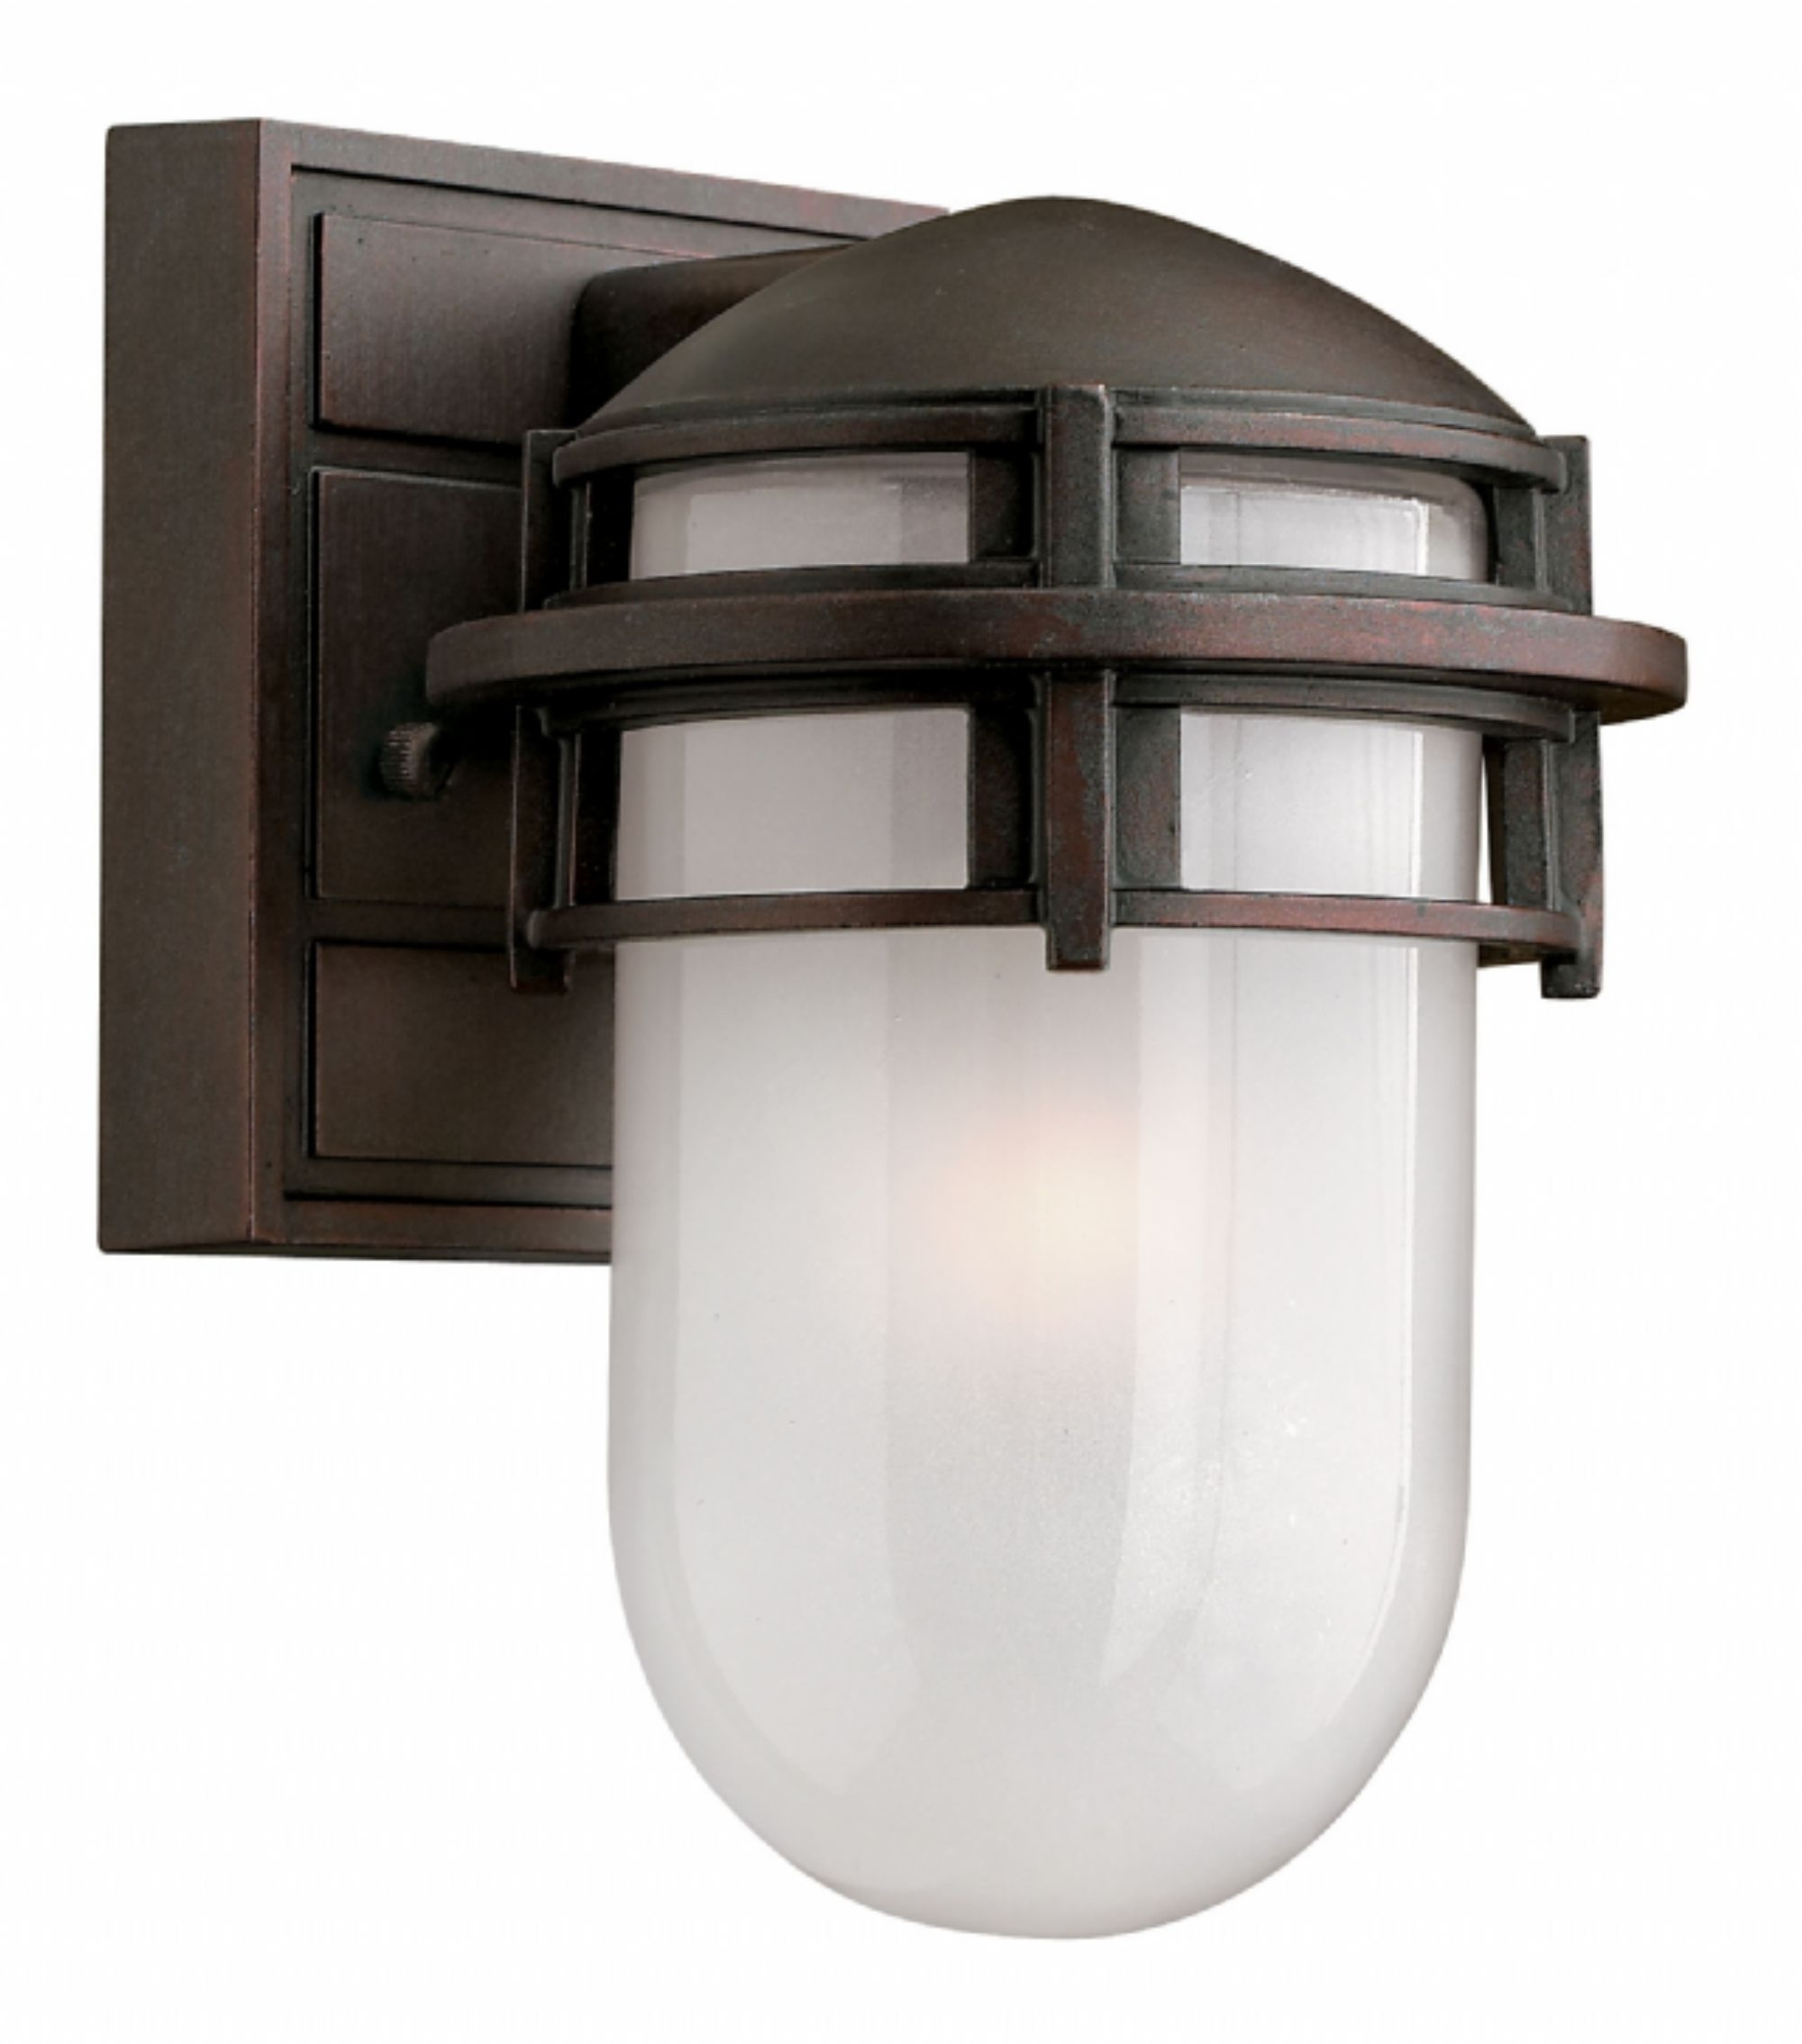 Victorian Bronze Reef > Exterior Wall Mount With Favorite Mini Wall Mount Hinkley Lighting (View 18 of 20)